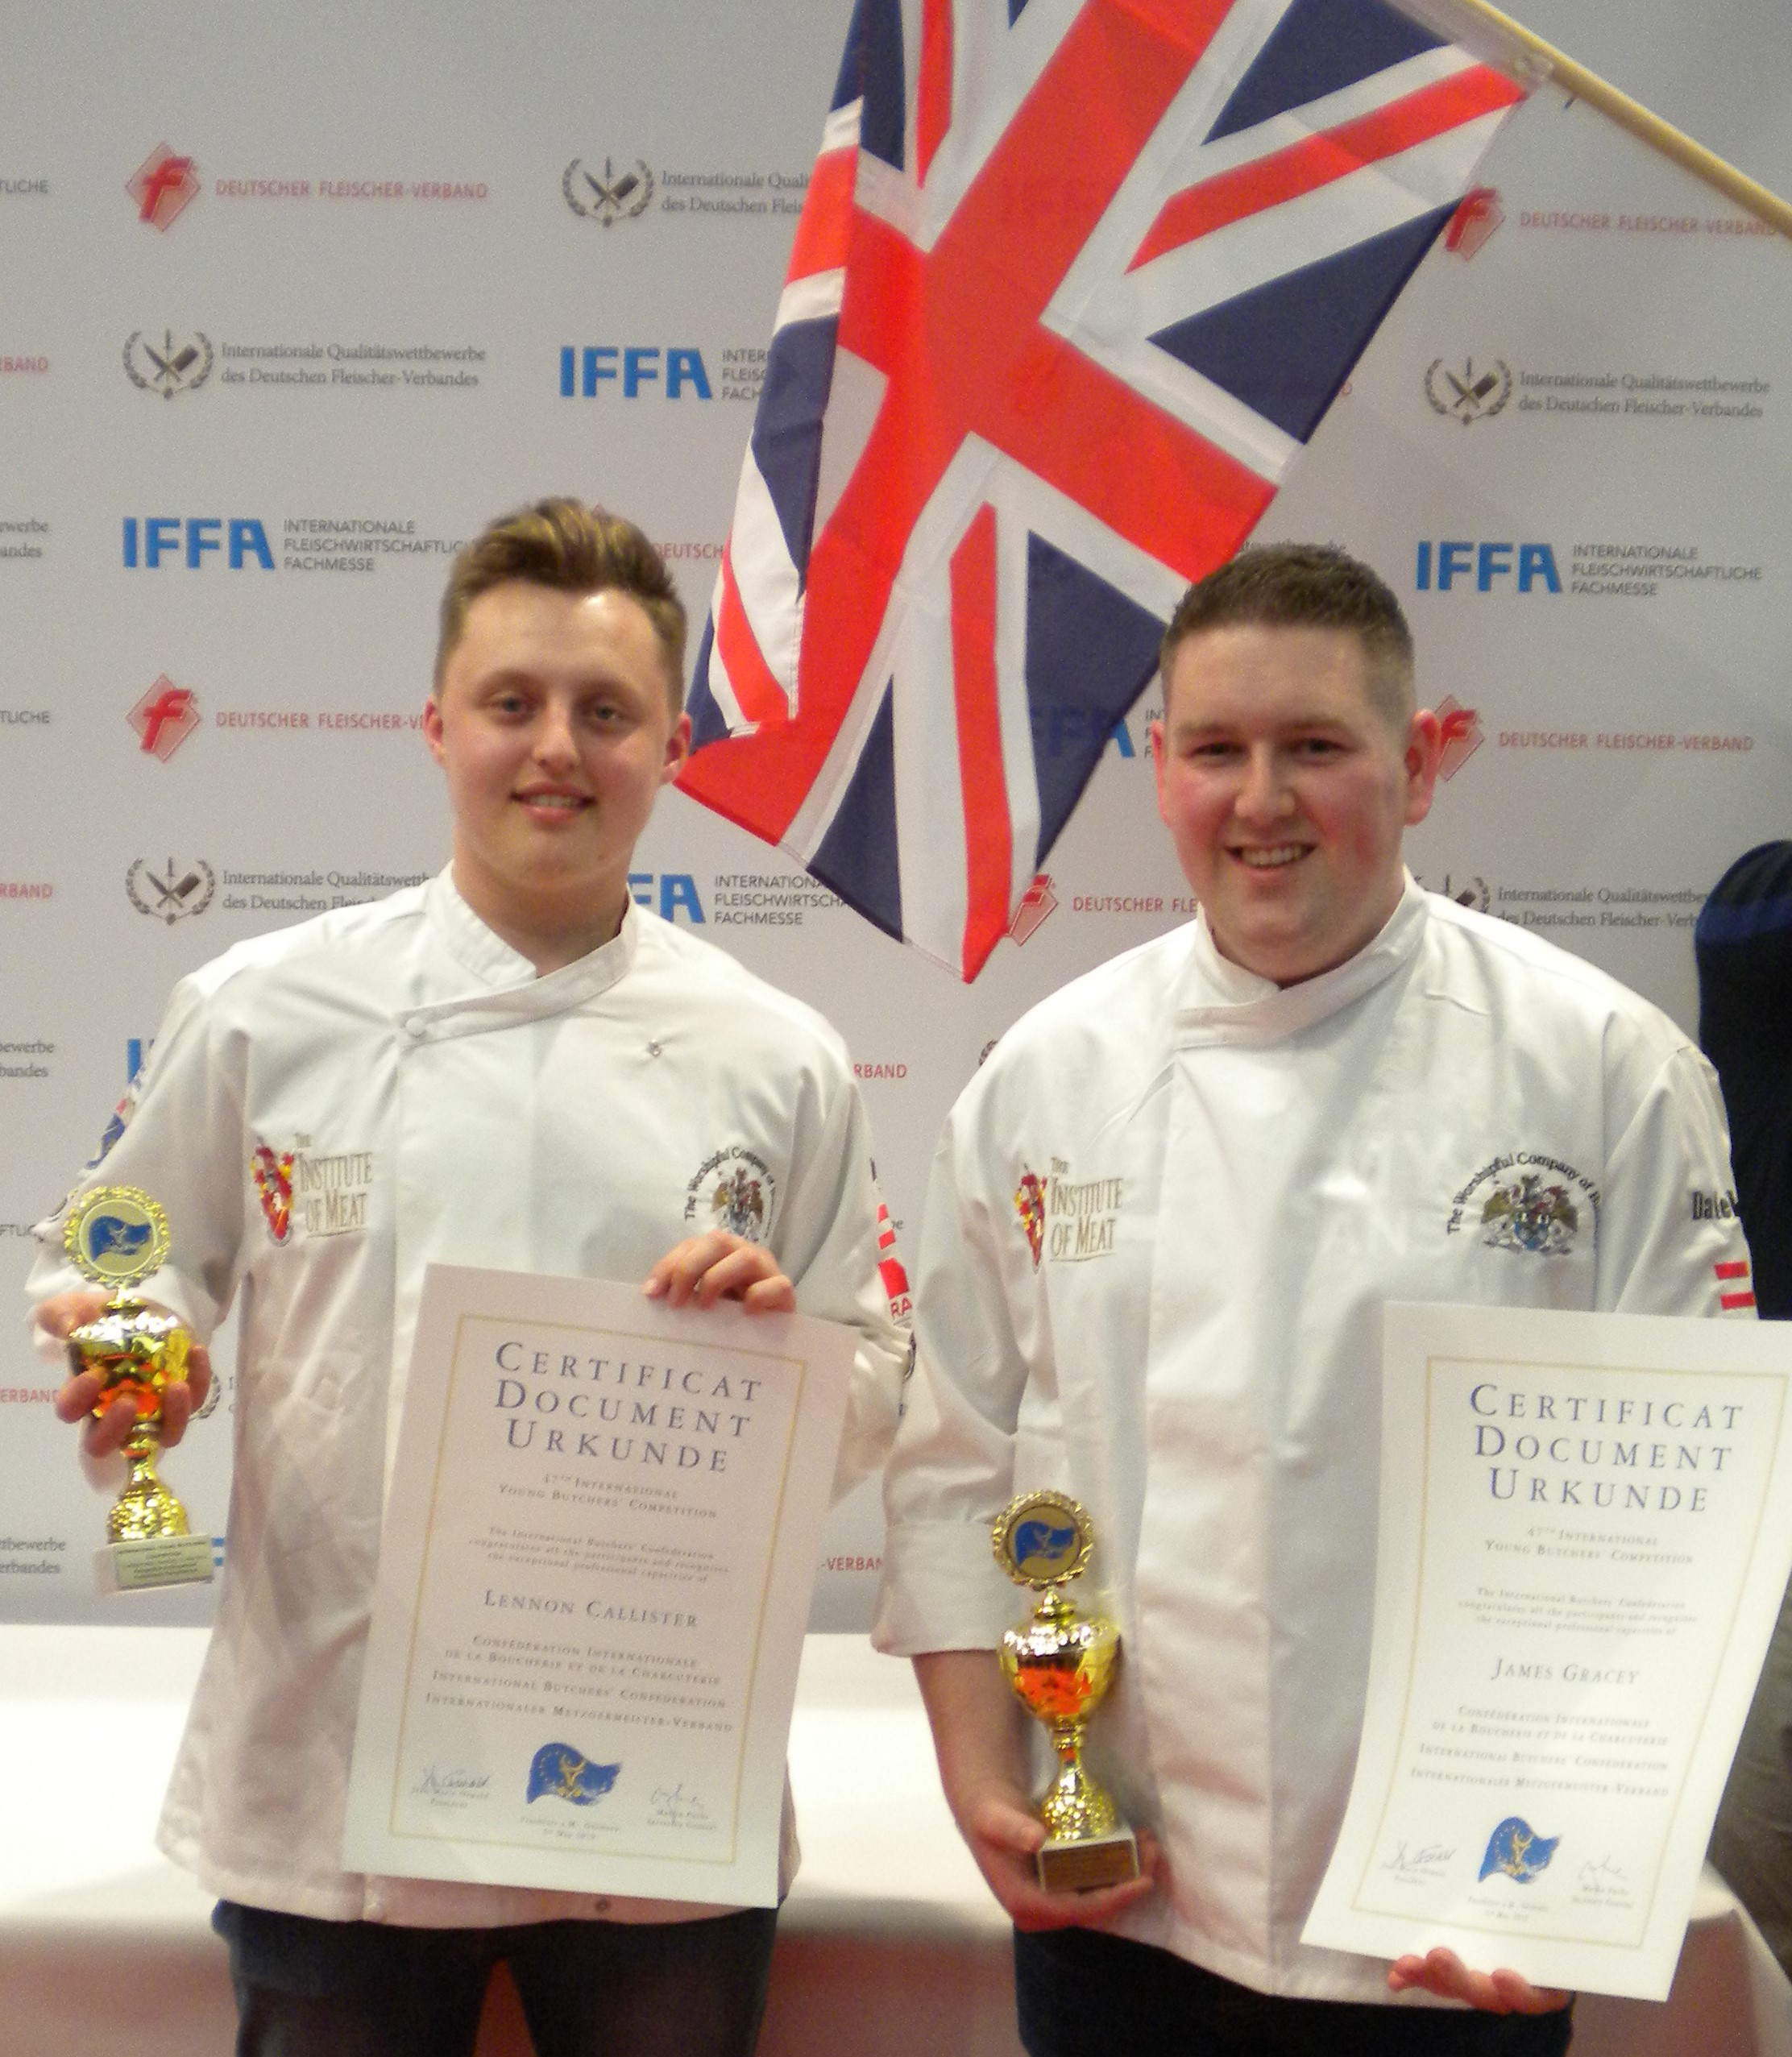 Team UK's Lennon Callister and James Gracey bring back success